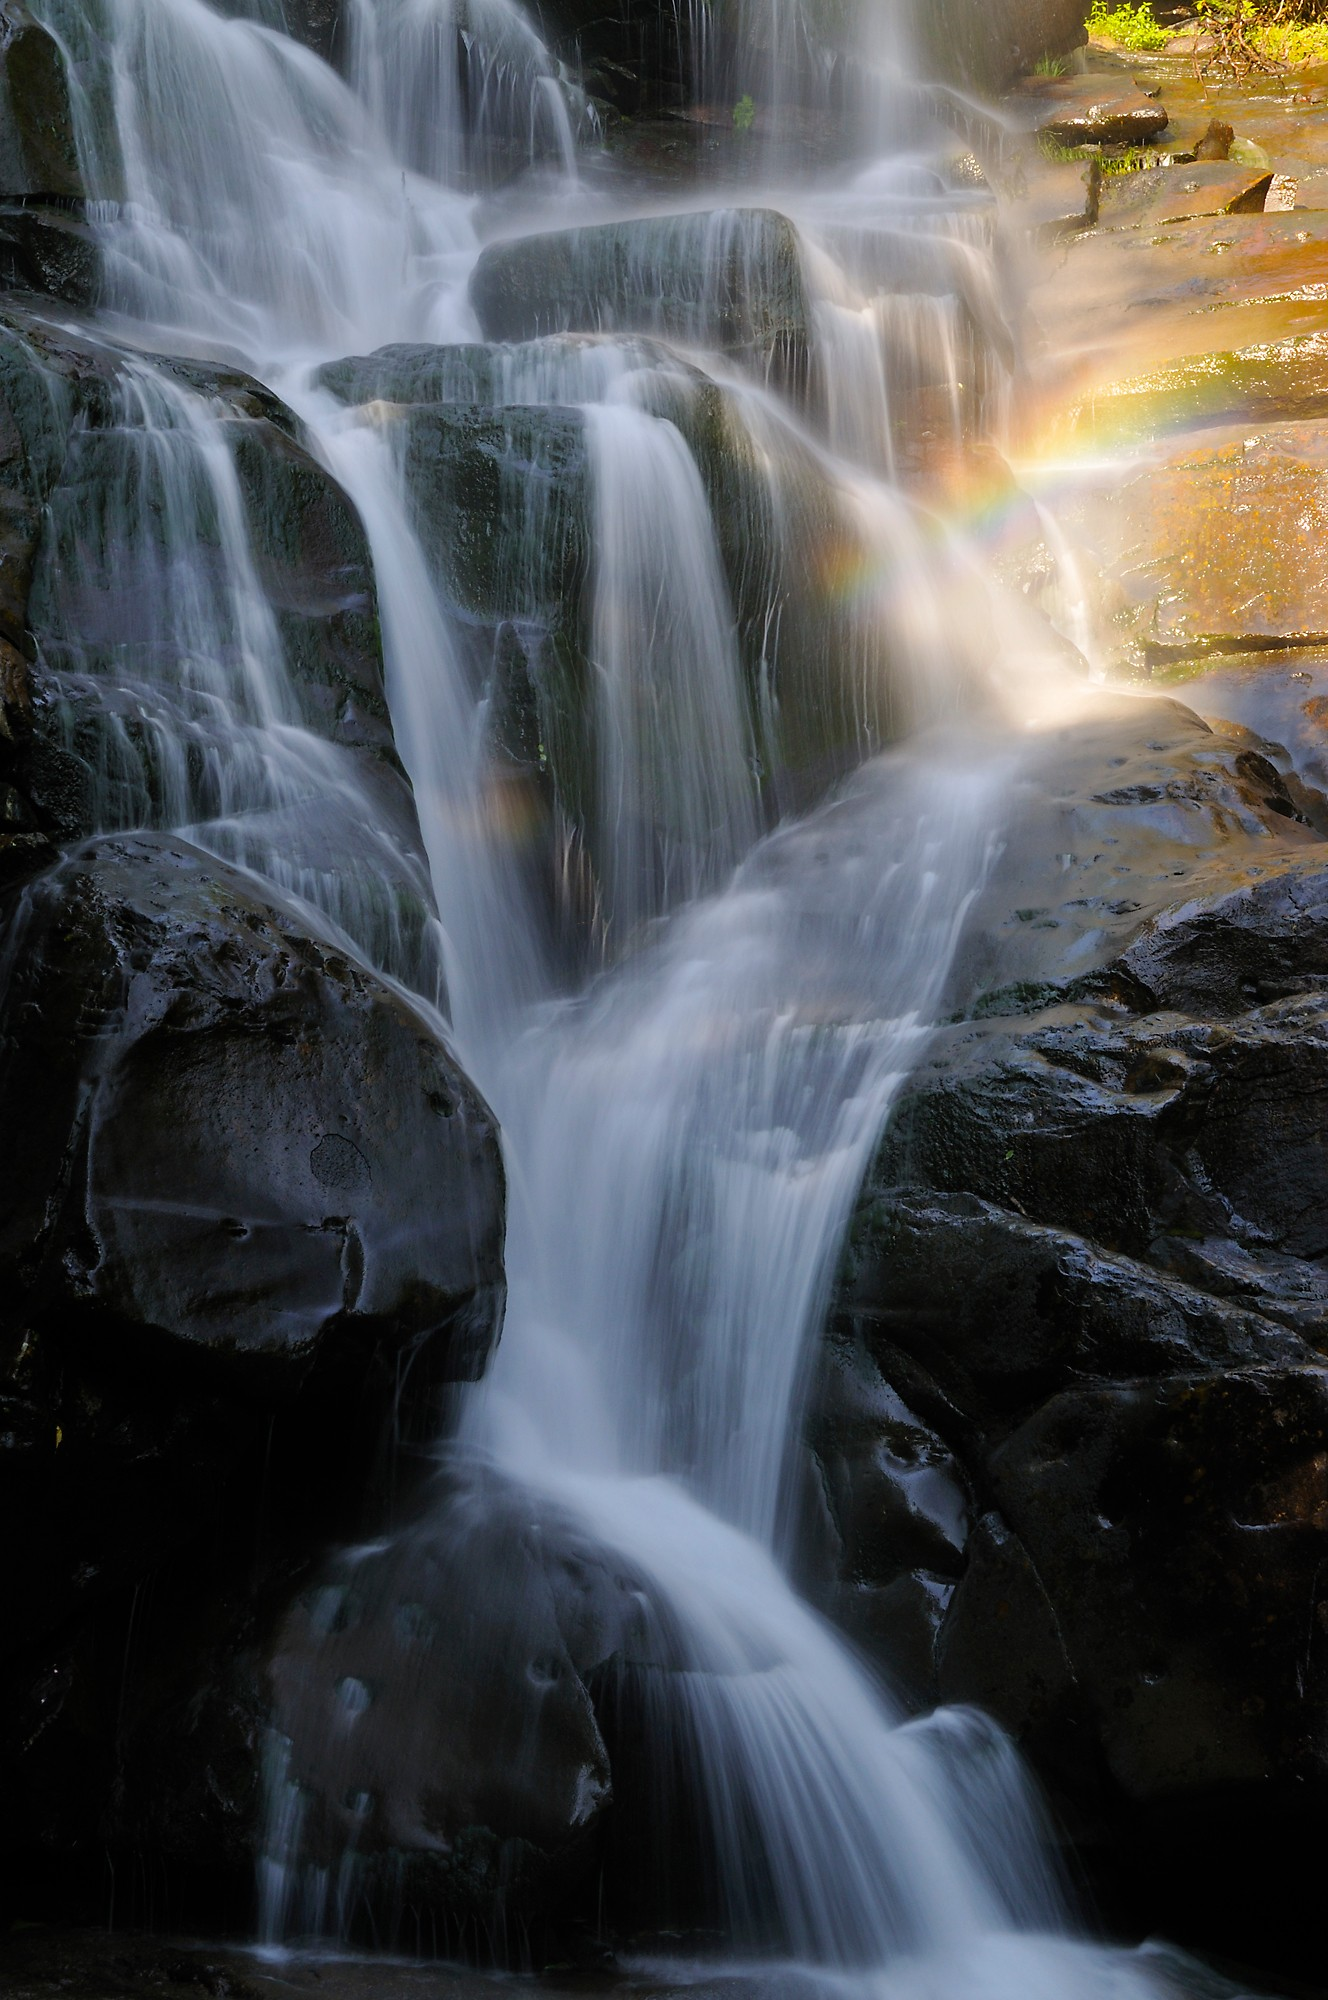 <div class='title'>           Ramsey Cascades & Rainbow         </div>                 <div class='description'>           A Rainbow decorates this view of a section of Ramsey Cascades in Great Smoky Mountains National Park         </div>